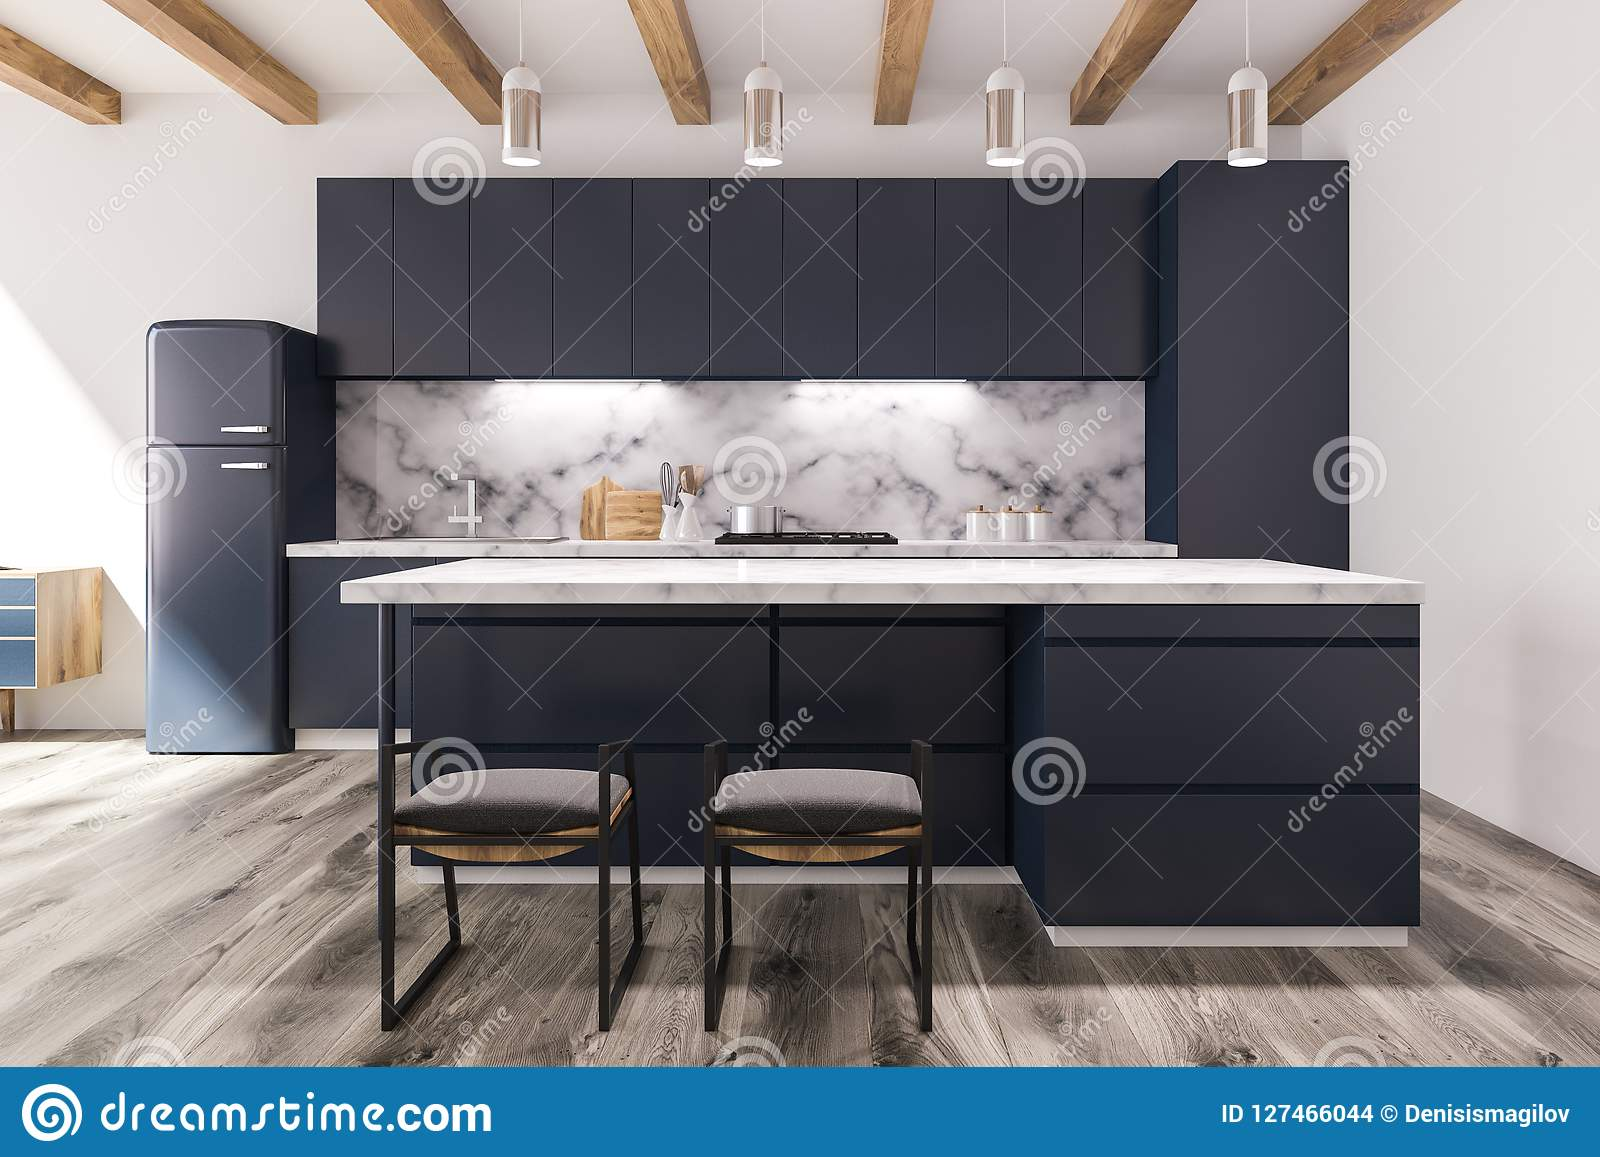 Black And Marble Kitchen In Studio Flat Stock Illustration Illustration Of Healthy Building 127466044,United Checked Baggage Fees